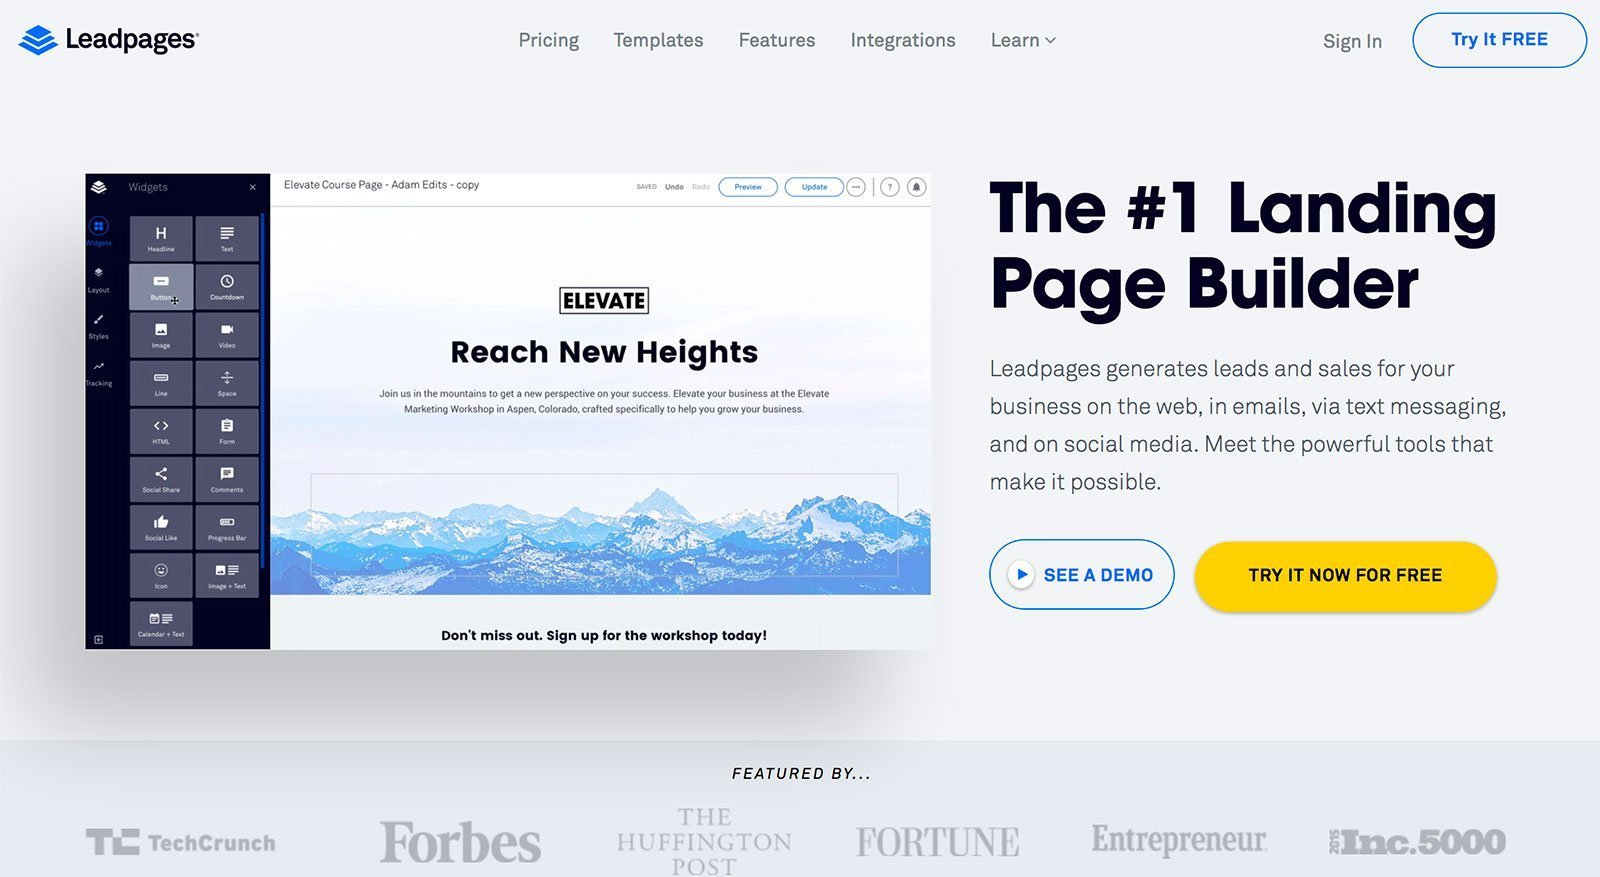 Best Leadpages Deals For Students 2020